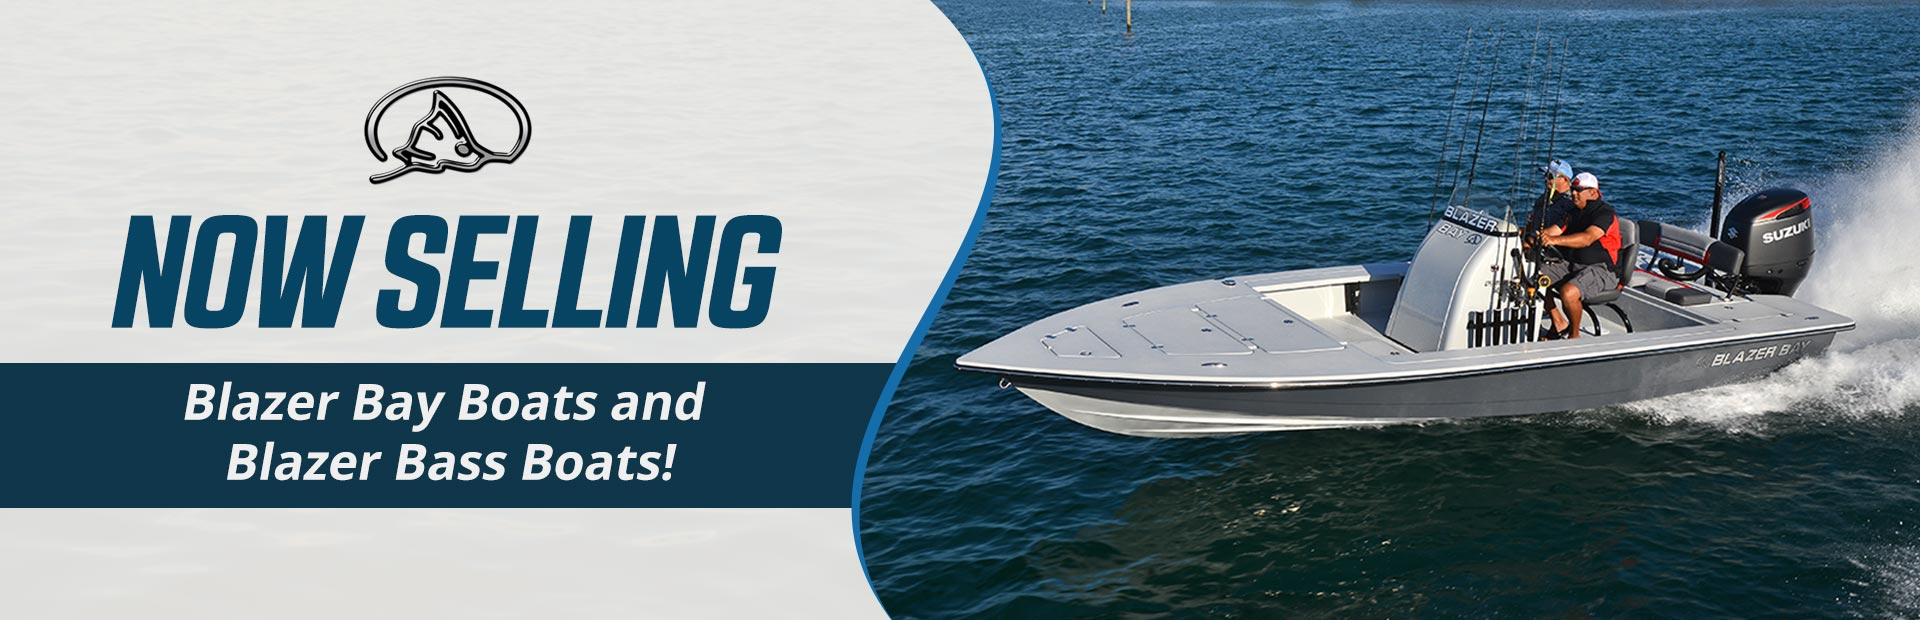 We are now selling Blazer bay boats and bass boats!